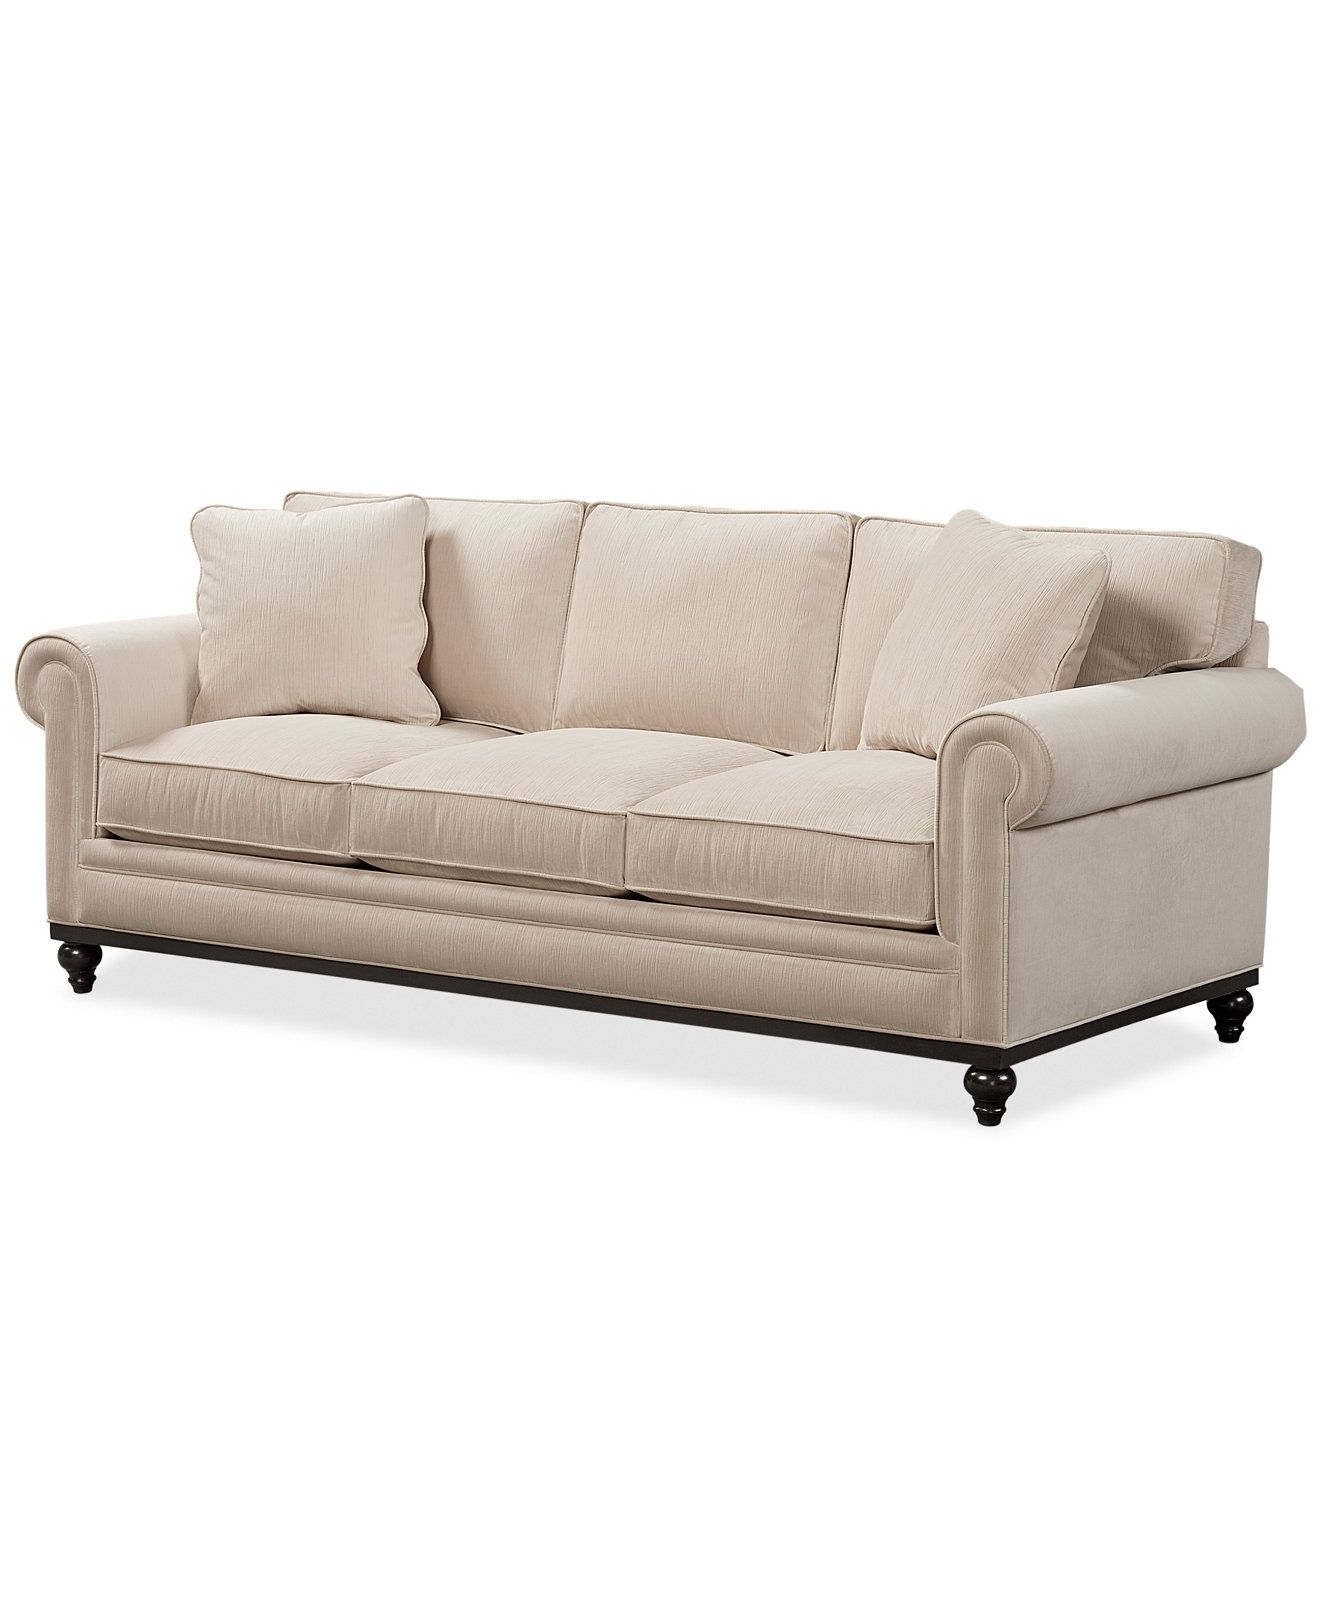 Current Macys Sofas Throughout Martha Stewart Collection New Club Fabric Roll Arm Sofa – Couches (View 16 of 20)